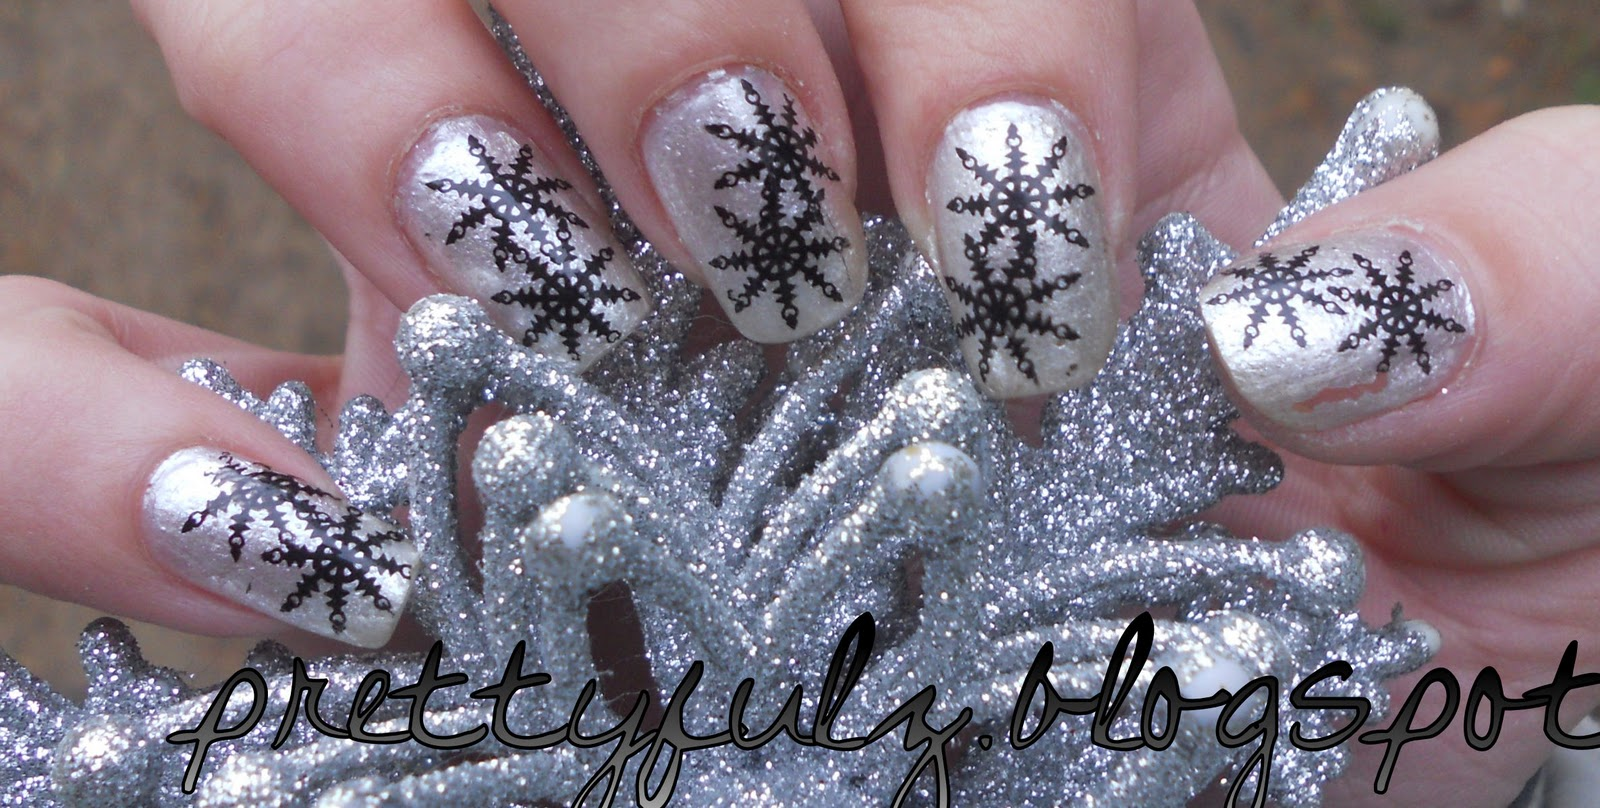 Prettyfulz snowflake nail art design winter nail art design snowflake nail art design winter nail art design prinsesfo Image collections